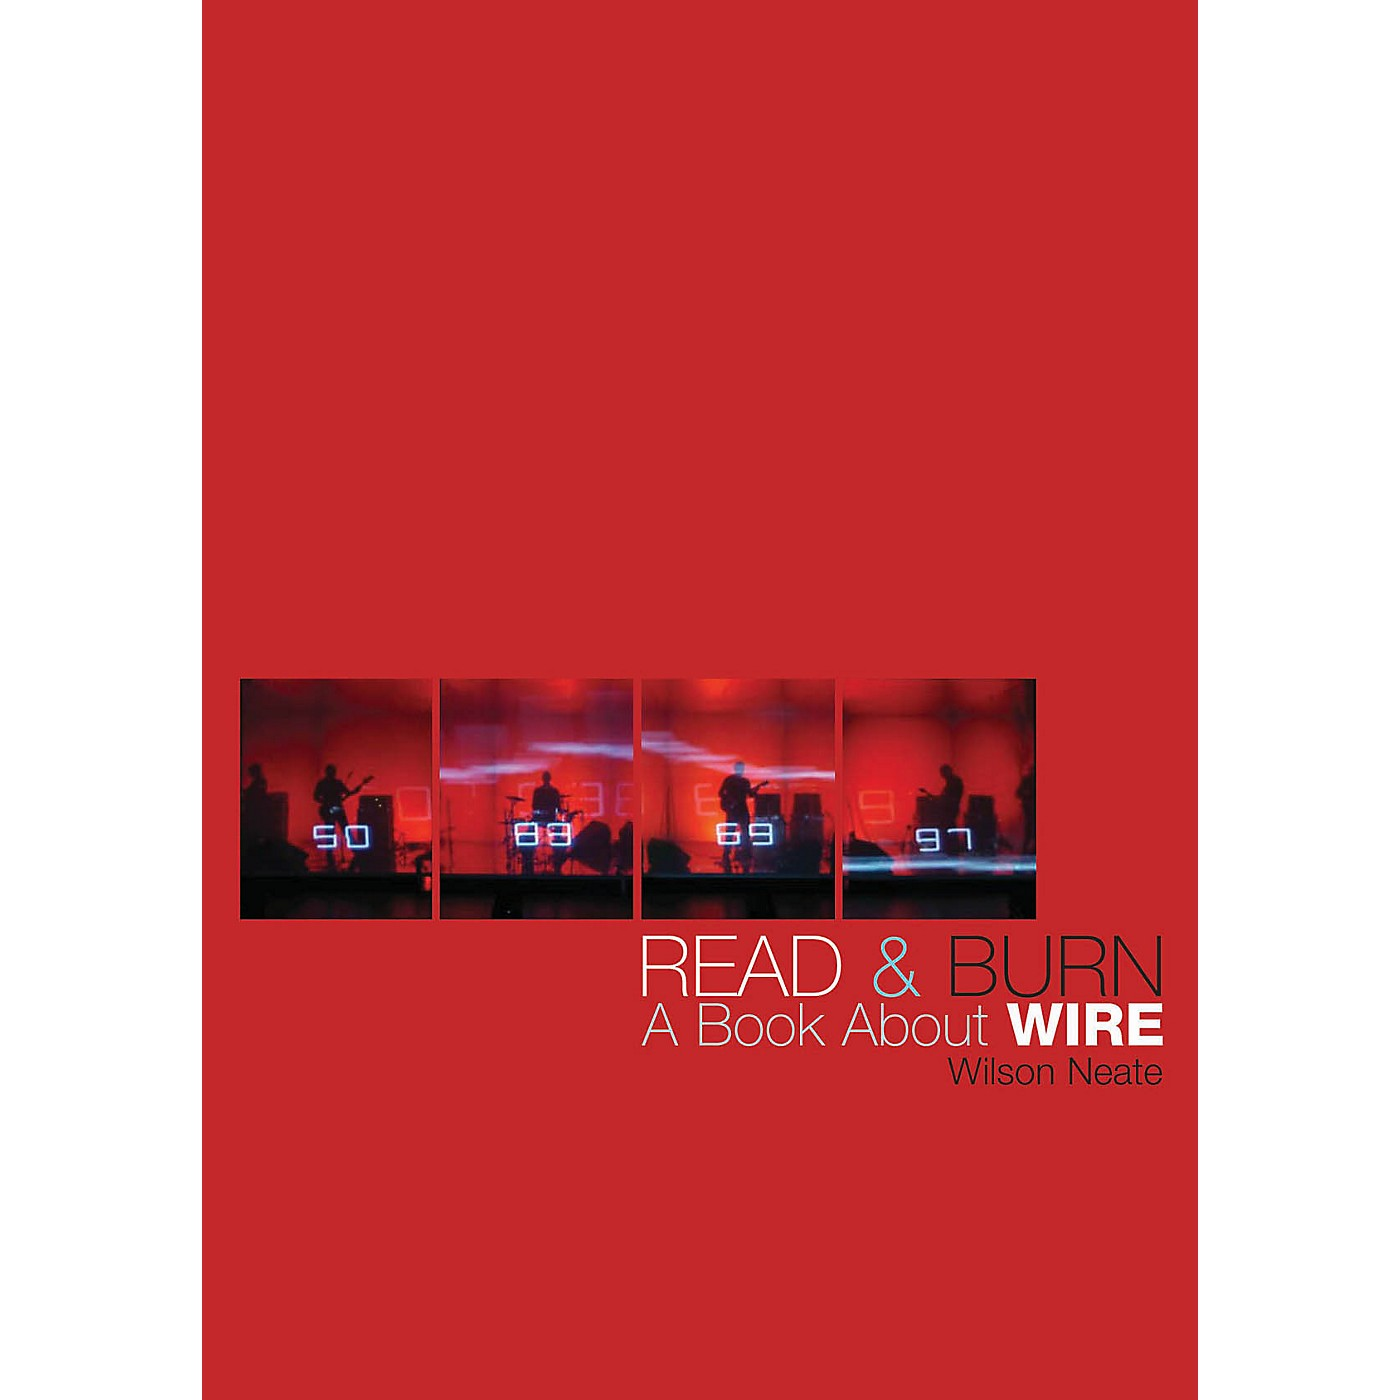 Jawbone Press Read & Burn (A Book About Wire) Book Series Softcover Written by Wilson Neate thumbnail